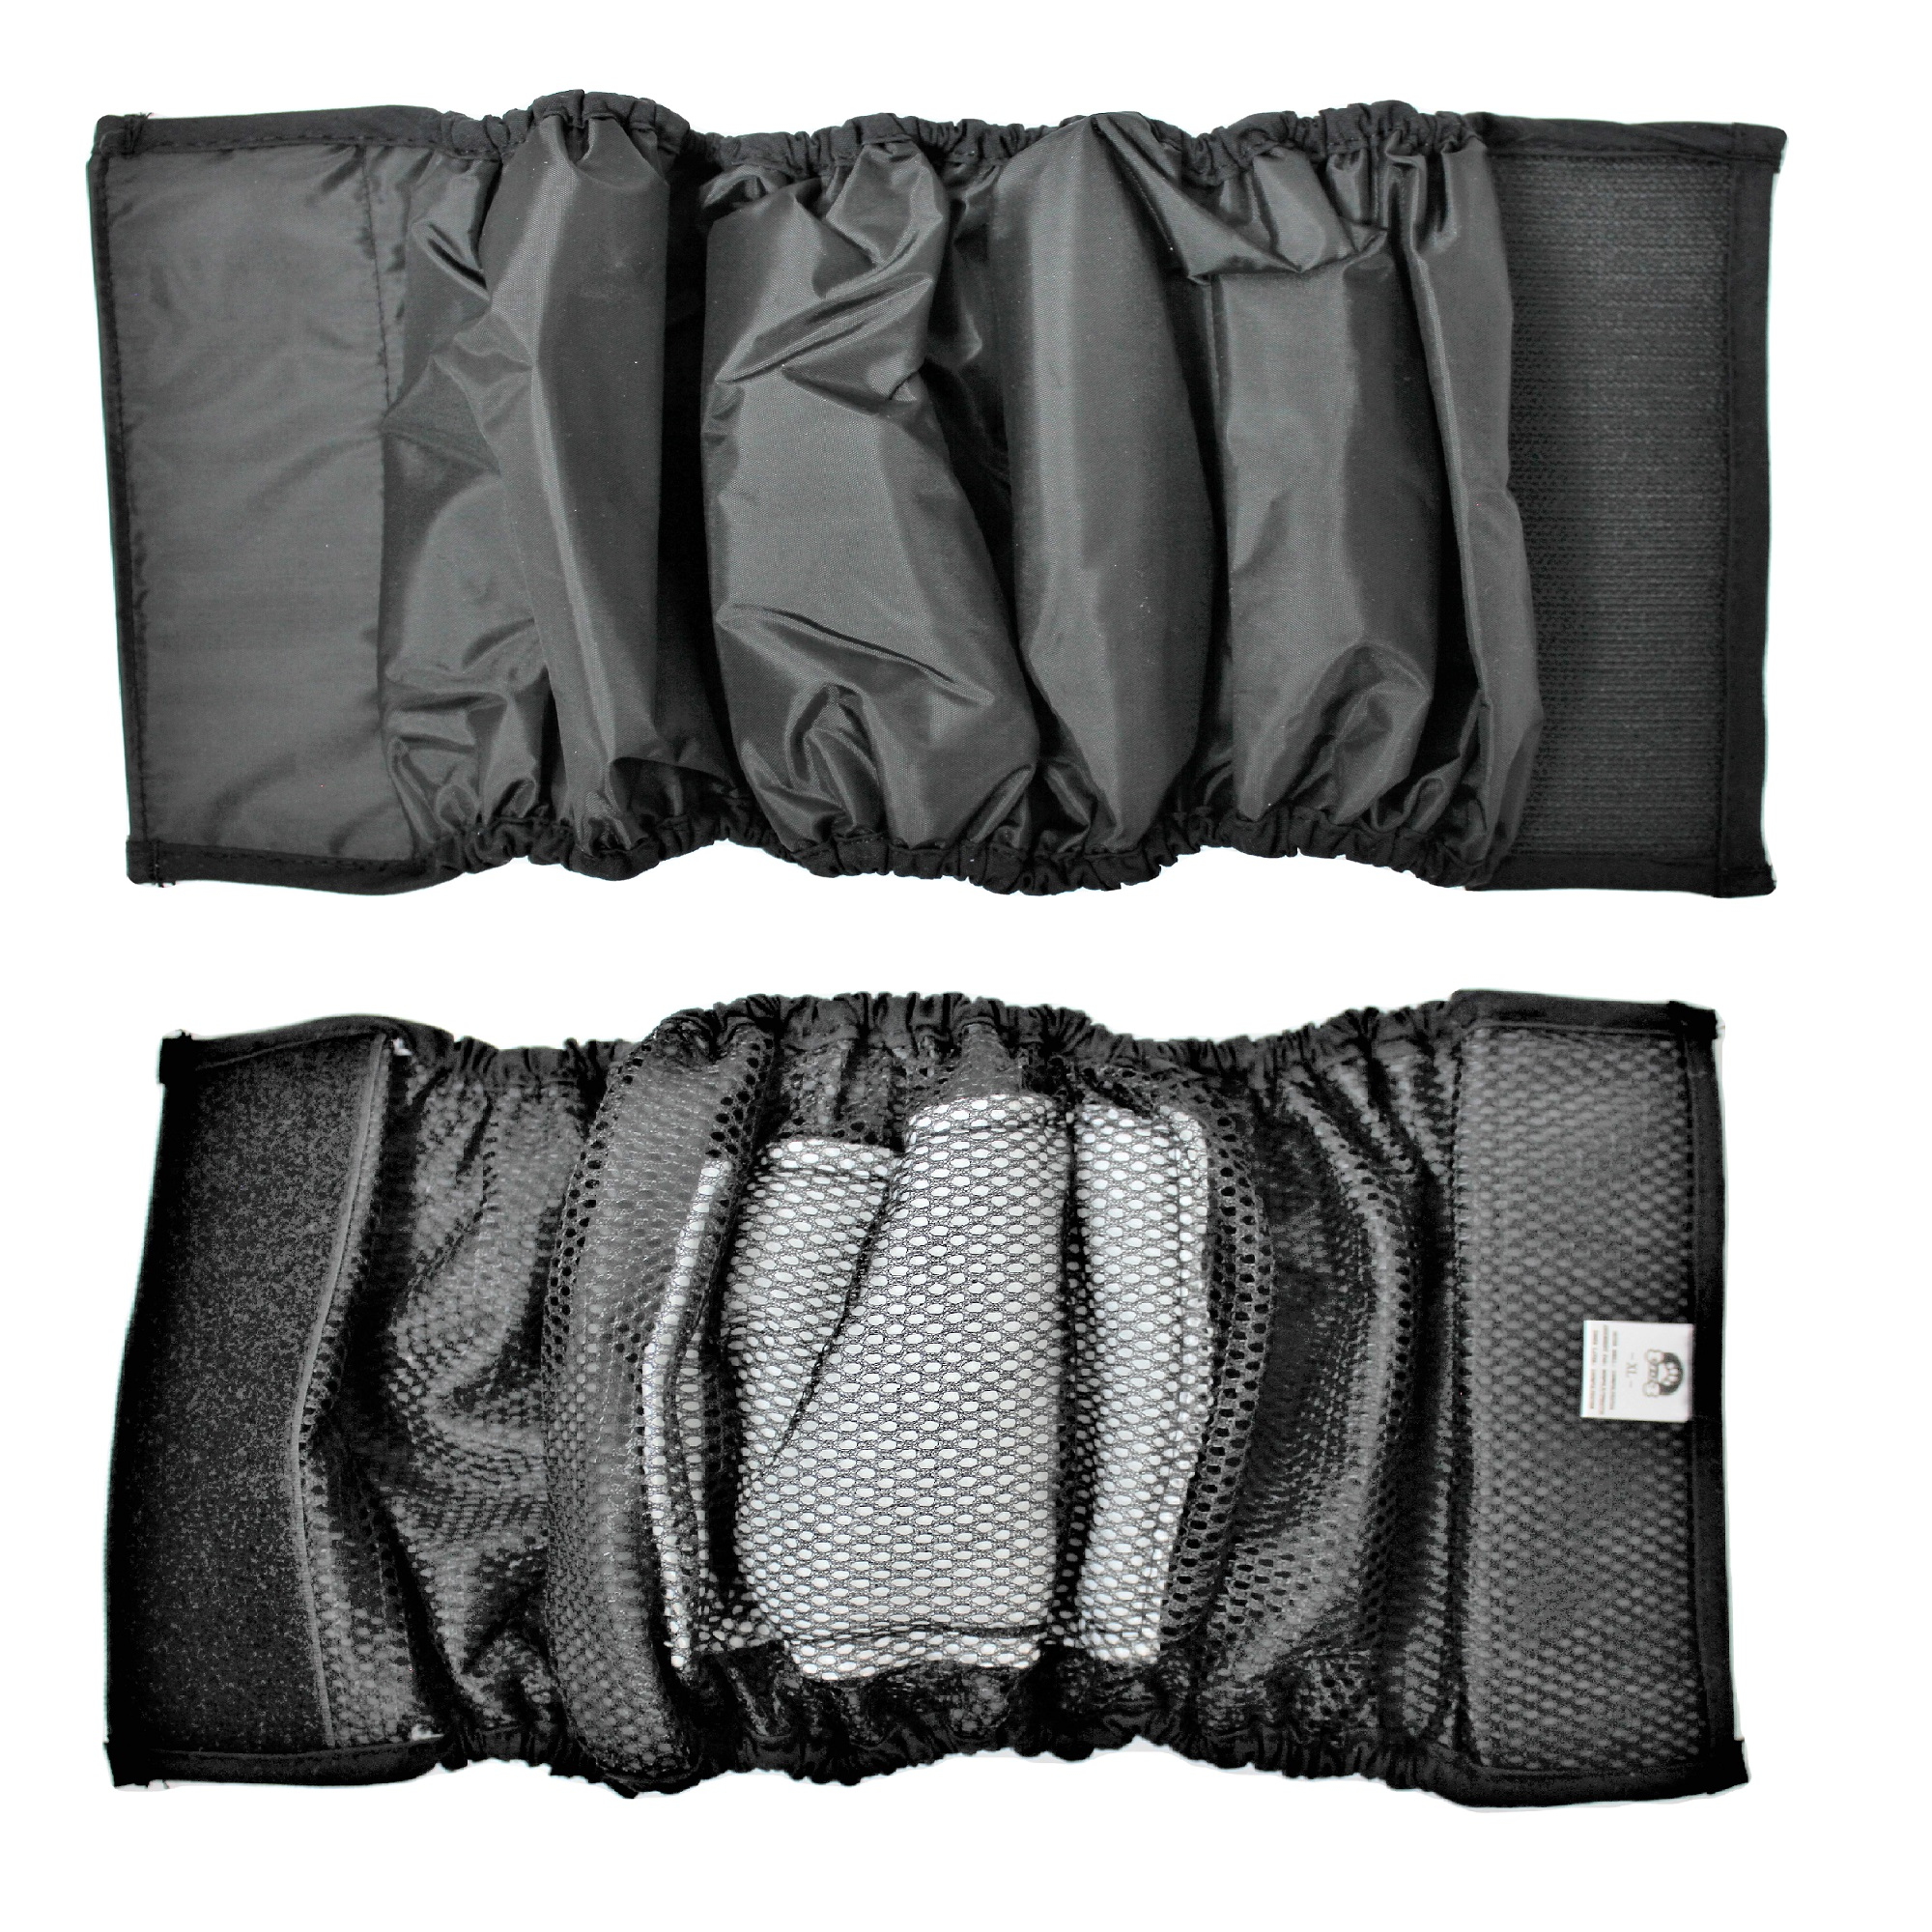 "PACK – 2pcs WATERPROOF Diapers Dog Belly Band WITH ABSORBENT Pad Male Wrap Reusable Black sz XXS (waist 6"" - 8"")"